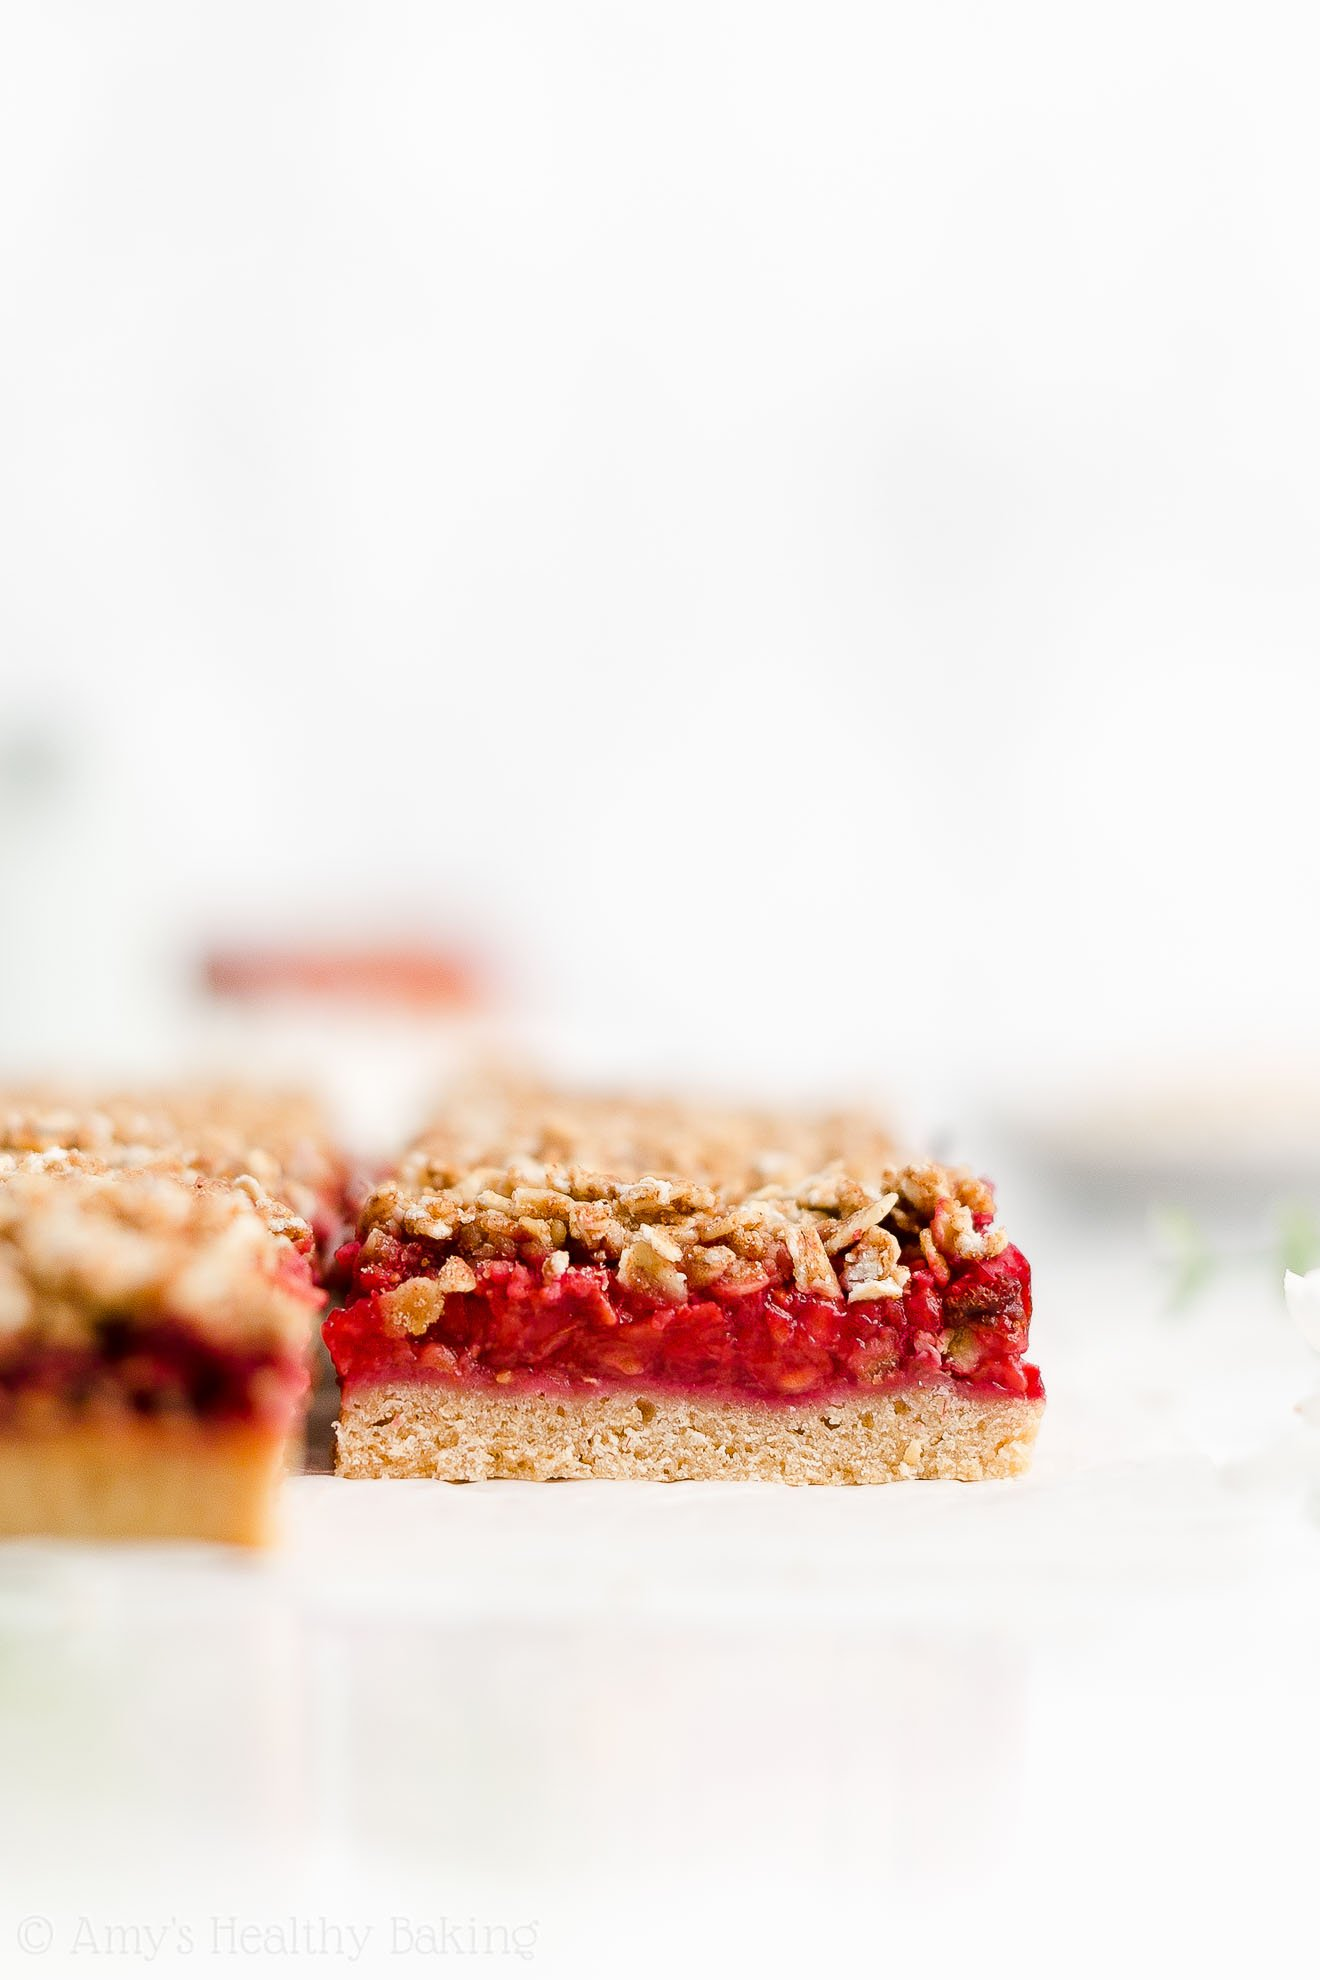 Best Easy Healthy Clean Eating Dairy Free Egg Free Raspberry Crumble Bars